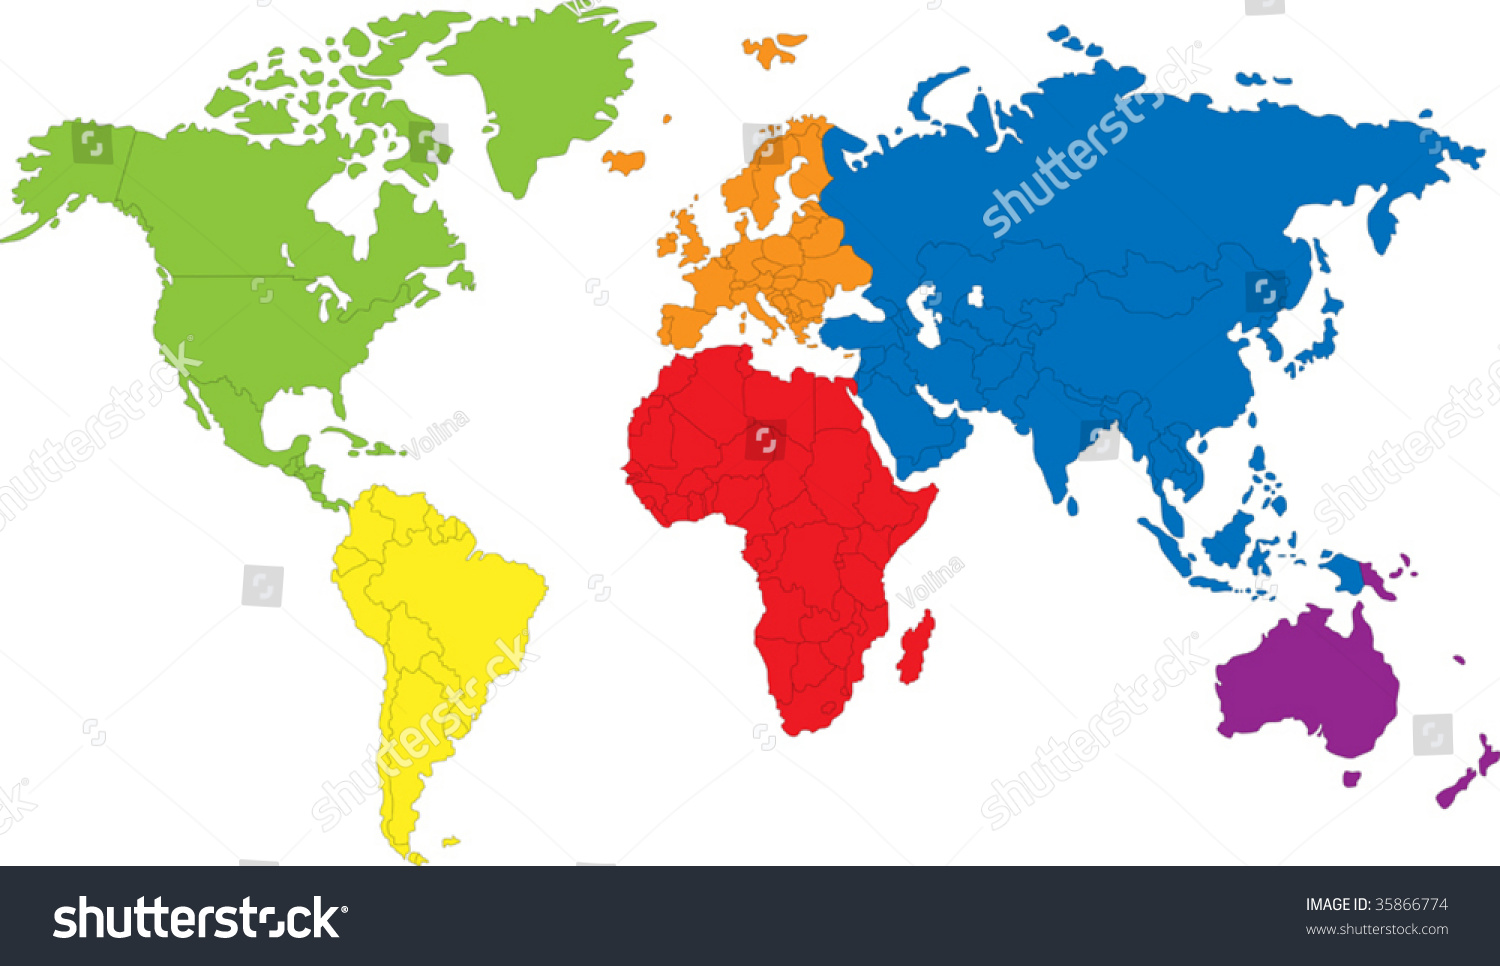 Colored Map World Countries Borders Stock Vector Royalty Free